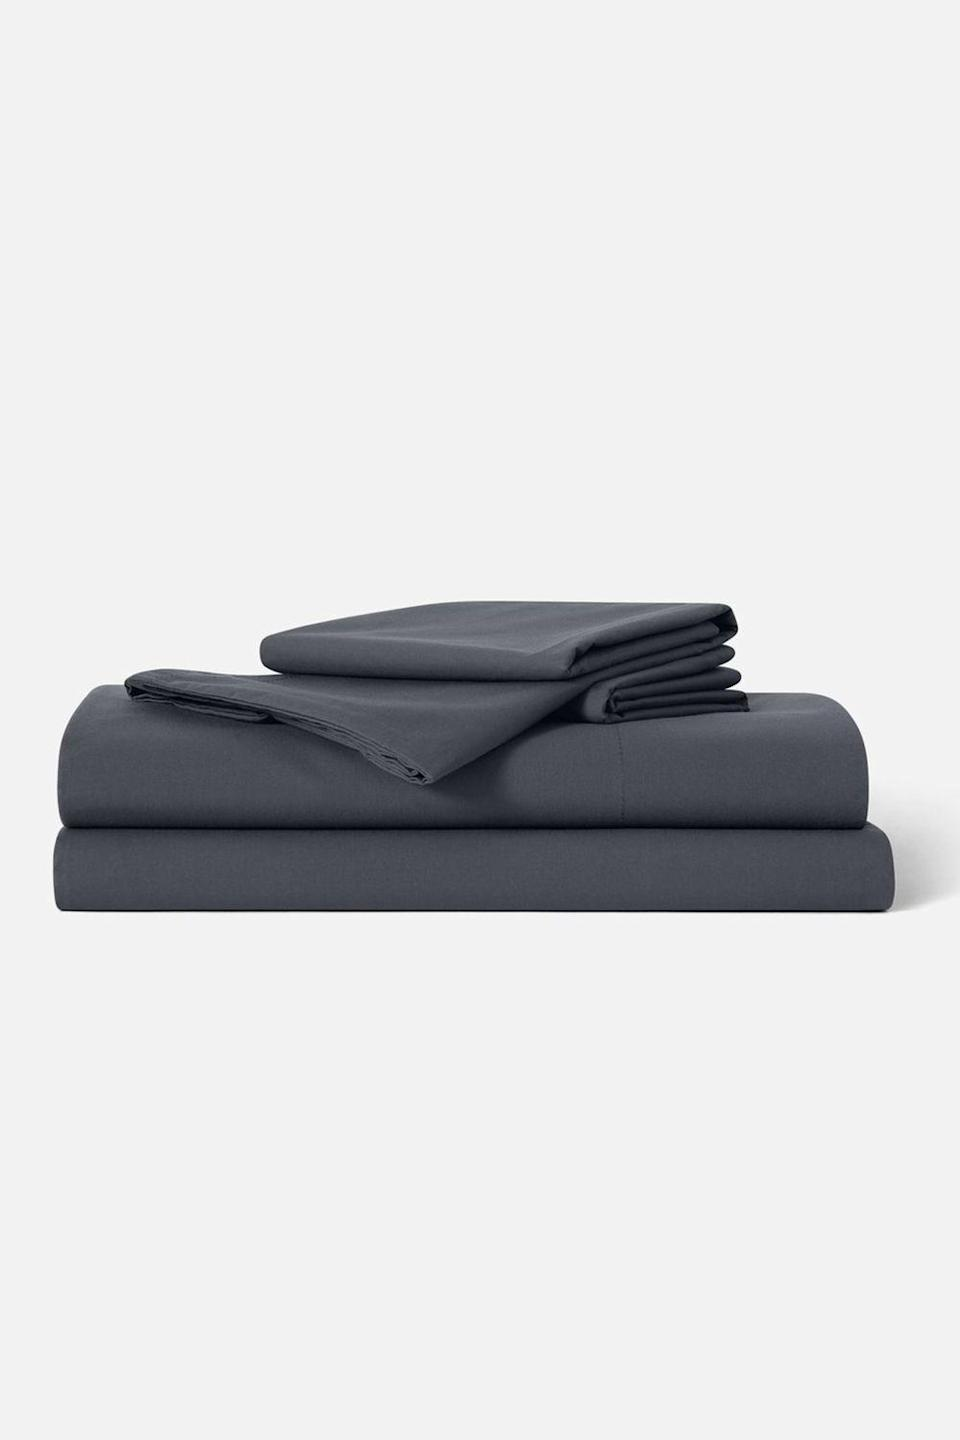 """<p><strong>Brooklinen</strong></p><p>brooklinen.com</p><p><strong>$135.00</strong></p><p><a href=""""https://go.redirectingat.com?id=74968X1596630&url=https%3A%2F%2Fwww.brooklinen.com%2Fproducts%2Fluxe-core-sheet-set&sref=https%3A%2F%2Fwww.oprahdaily.com%2Flife%2Fg26961897%2Fgifts-for-new-dads%2F"""" rel=""""nofollow noopener"""" target=""""_blank"""" data-ylk=""""slk:Shop Now"""" class=""""link rapid-noclick-resp"""">Shop Now</a></p><p>Your worn-out jersey sheets might have done the trick pre-baby, but now your new dad might need something even cozier to ensure he can get as much sleep as possible—even if that's just a quick power nap. Our recommendation: These bestselling sheets from Brooklinen—available in 13 colors and patterns, plus six sizes—which are made from 100% cotton and feature a luxurious 480-thread count, so they feel incredibly soft and buttery smooth.</p>"""